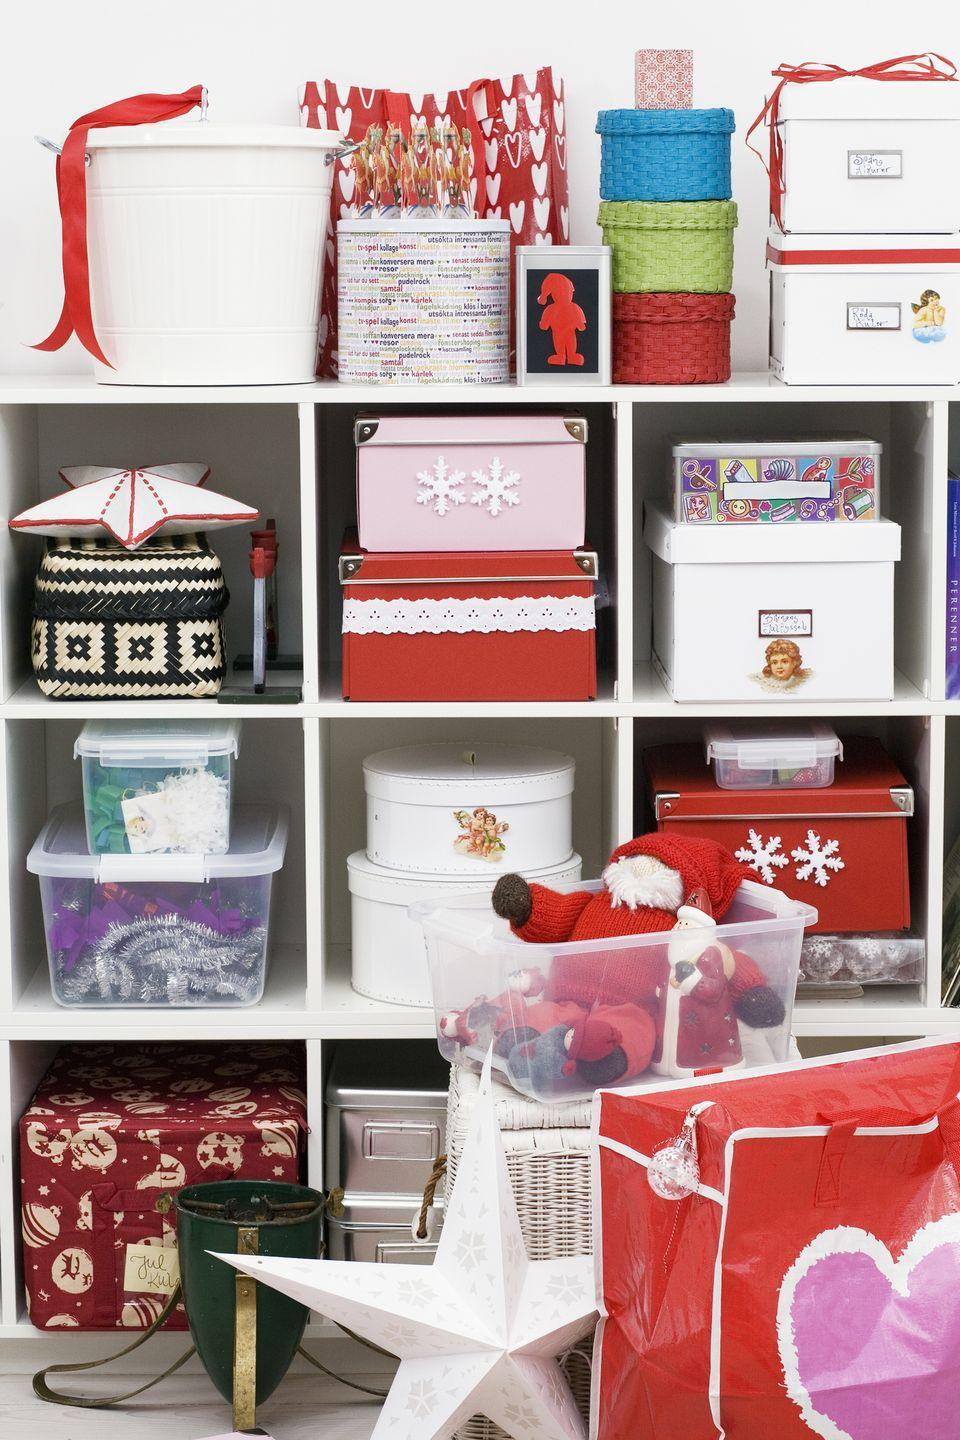 "<p>Tackle the challenge of finding a home for presents and special Christmas items by operating one simple rule: store 'like with like'. Keep all decorations in one place – attic, garage, loft – labelled for ease next year. Organise children's rooms so similar toys and games are stored together, likewise scarves, jewellery, socks and underwear.</p><p><strong>SHOP: </strong><a class=""link rapid-noclick-resp"" href=""https://www.amazon.co.uk/Storage-Boxes/b?ie=UTF8&node=3313451031&tag=hearstuk-yahoo-21&ascsubtag=%5Bartid%7C2060.g.185%5Bsrc%7Cyahoo-uk"" rel=""nofollow noopener"" target=""_blank"" data-ylk=""slk:Browse a range of storage boxes on Amazon"">Browse a range of storage boxes on Amazon</a> </p>"